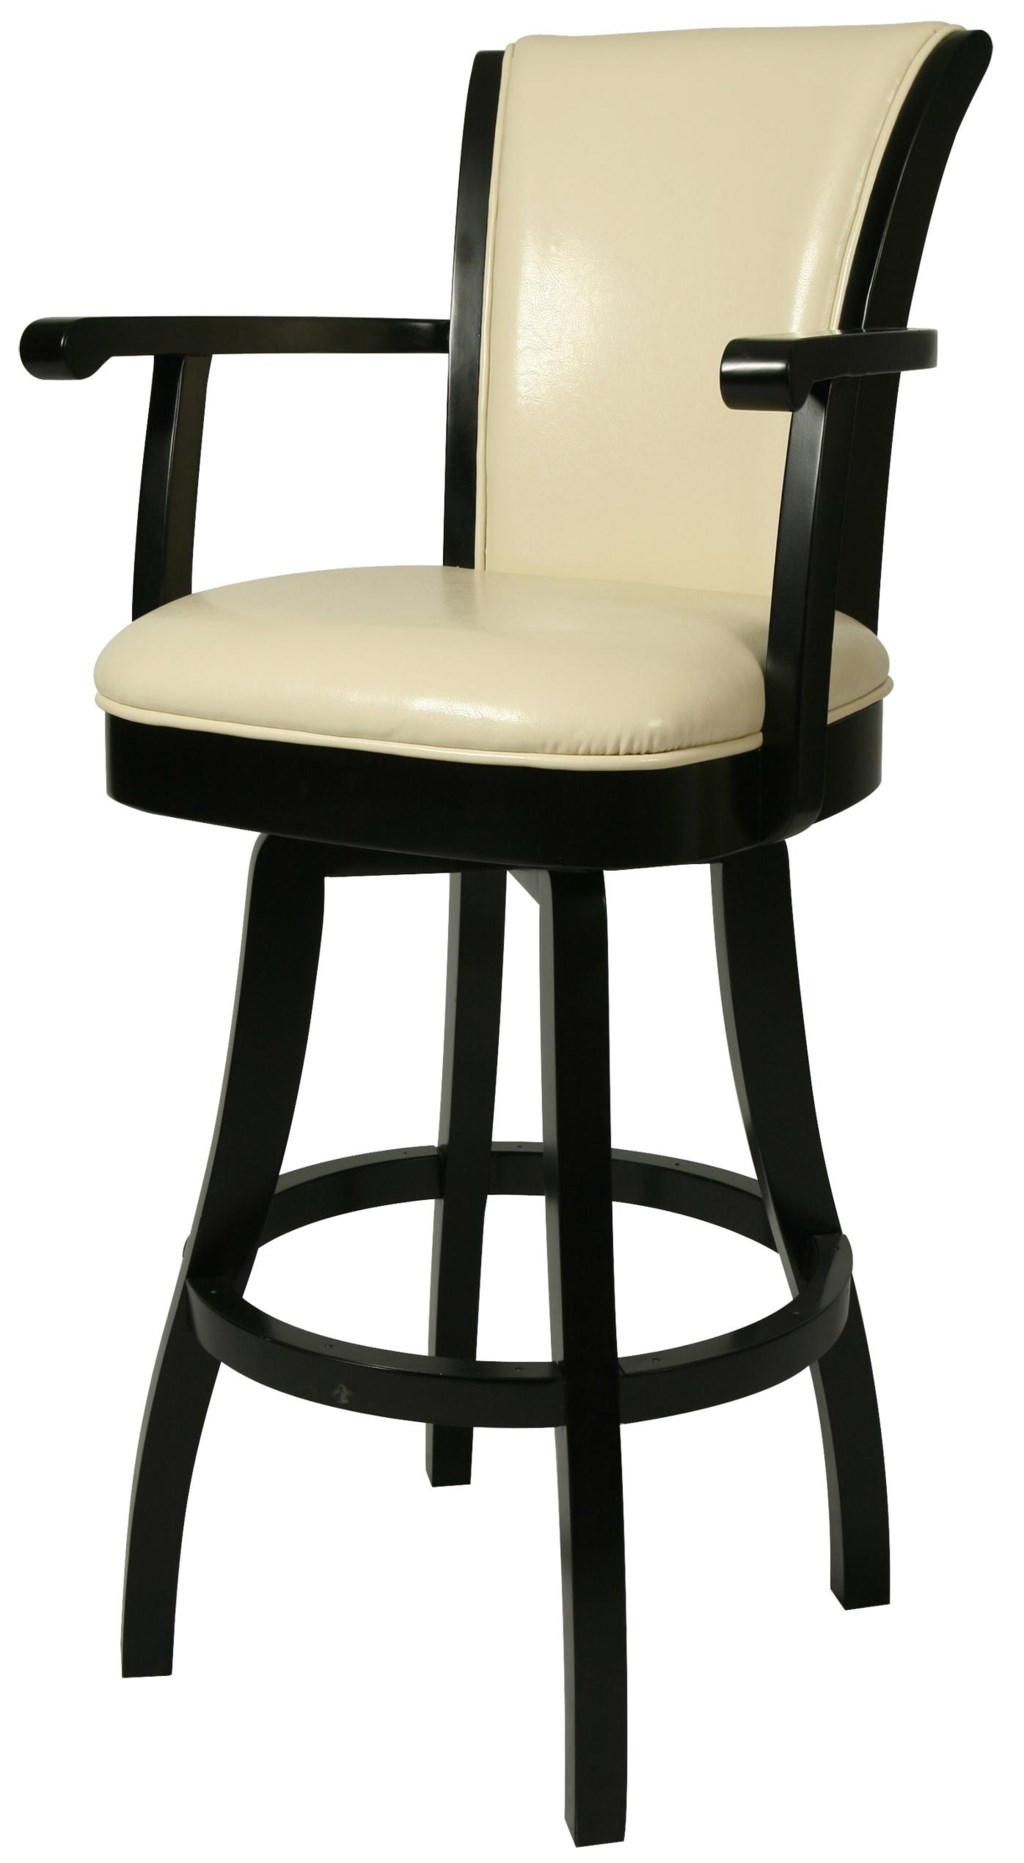 Pastel Minson Bar Stools Collection 26 Glenwood Counter Height